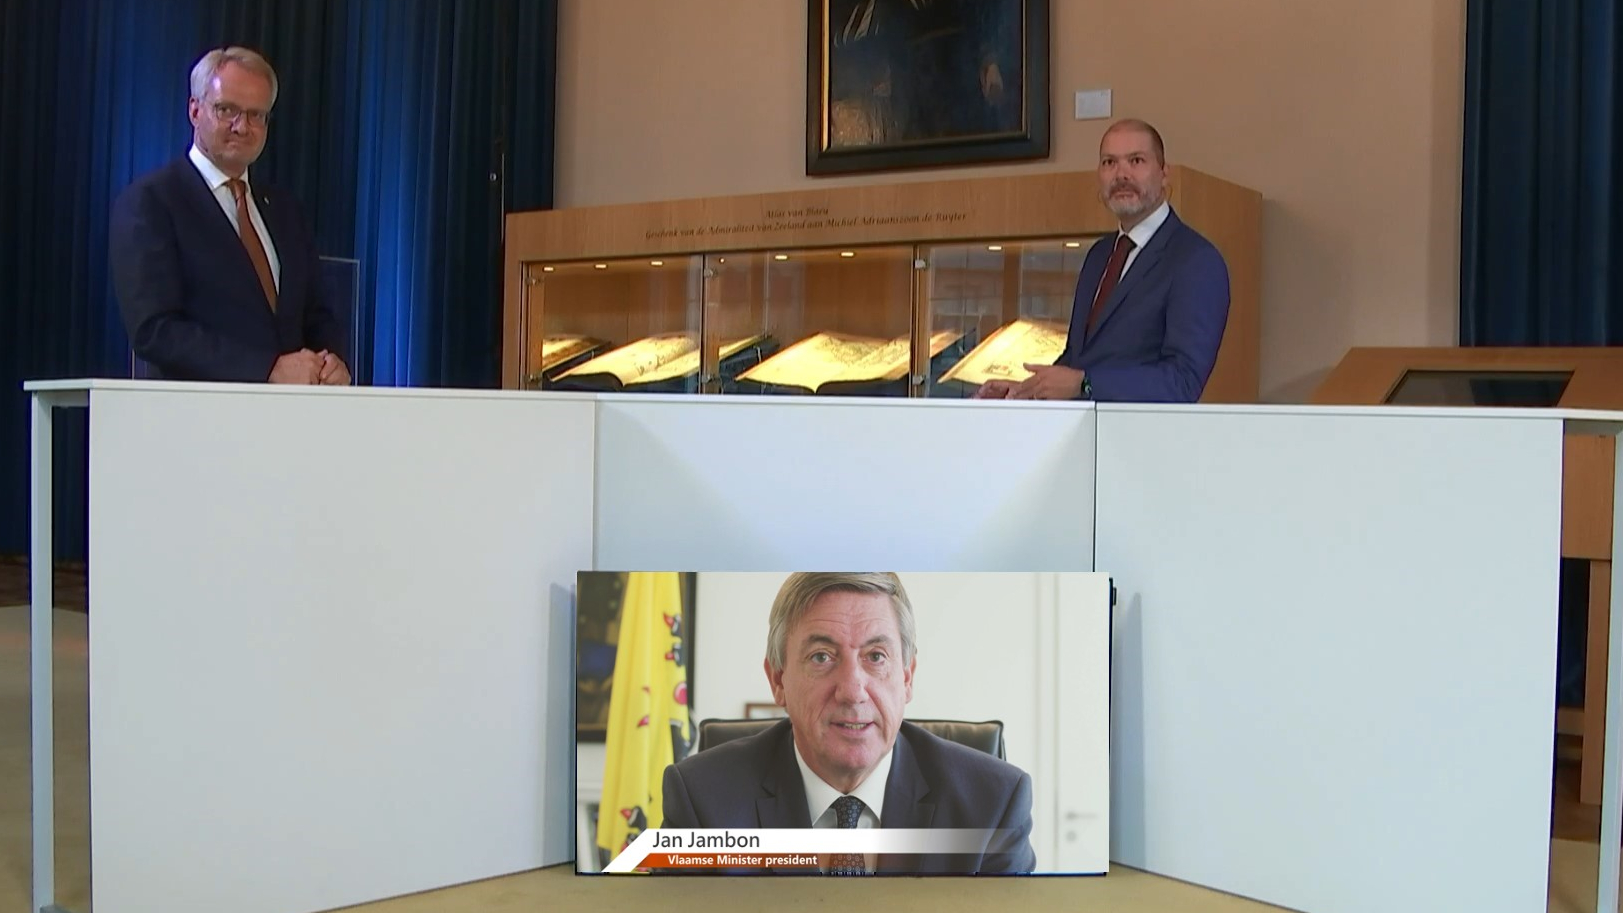 Commisser Han Polman and minister-president jambon  (screen ) at the Zeeuwse Oesterontmoeting Zeeland Oyster Meeting)